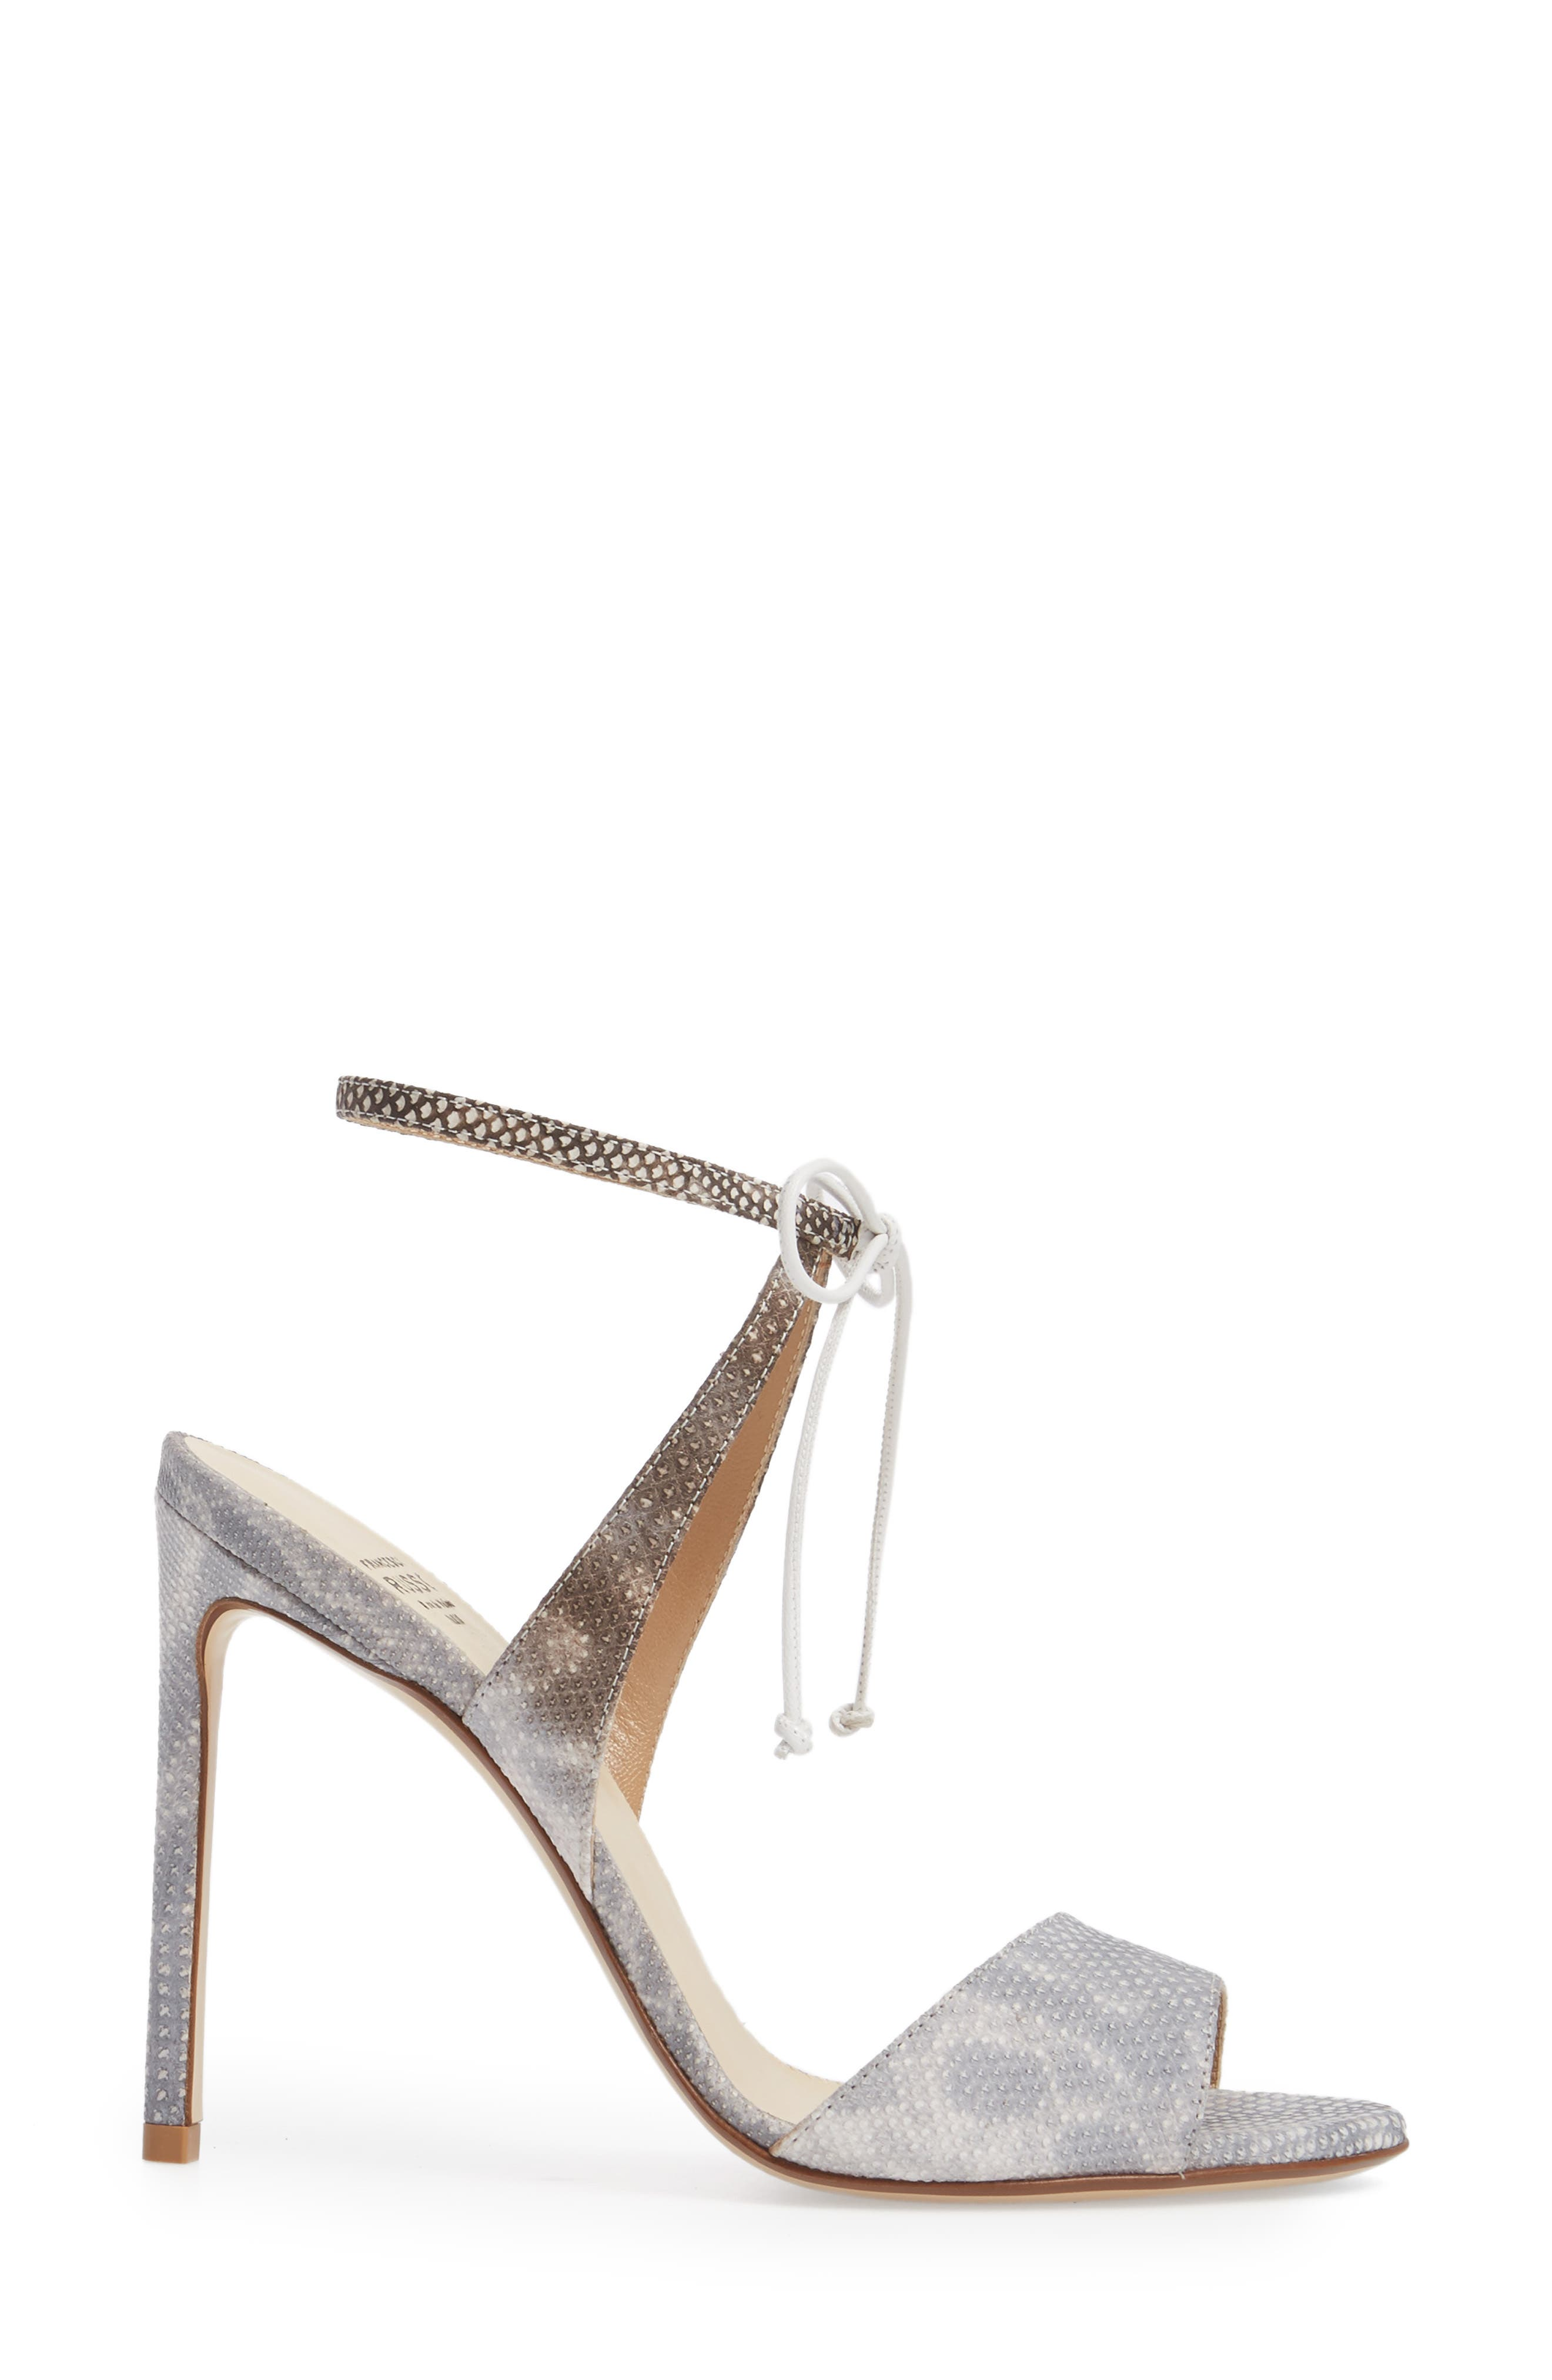 Ankle Strap Sandal,                             Alternate thumbnail 3, color,                             White